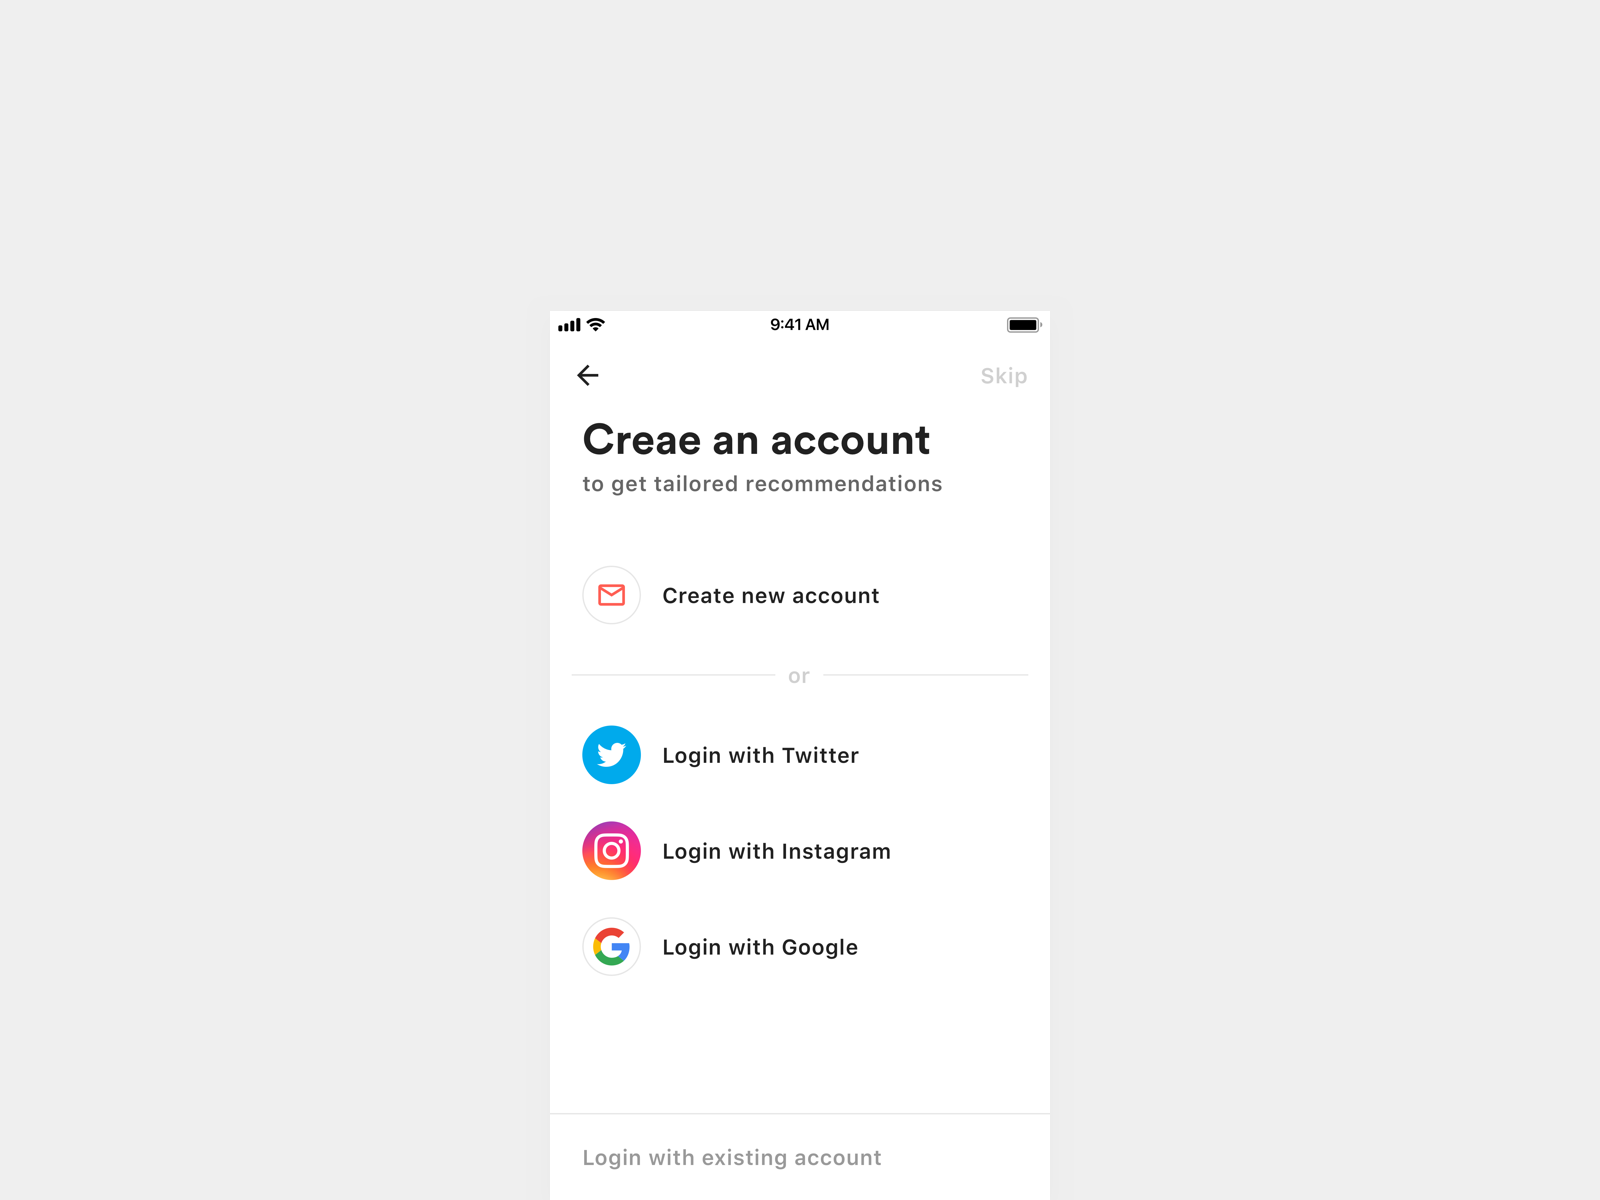 Sign Up Page dailyui 001 dailyui signin signup iphone minimal mobile ios ux ui